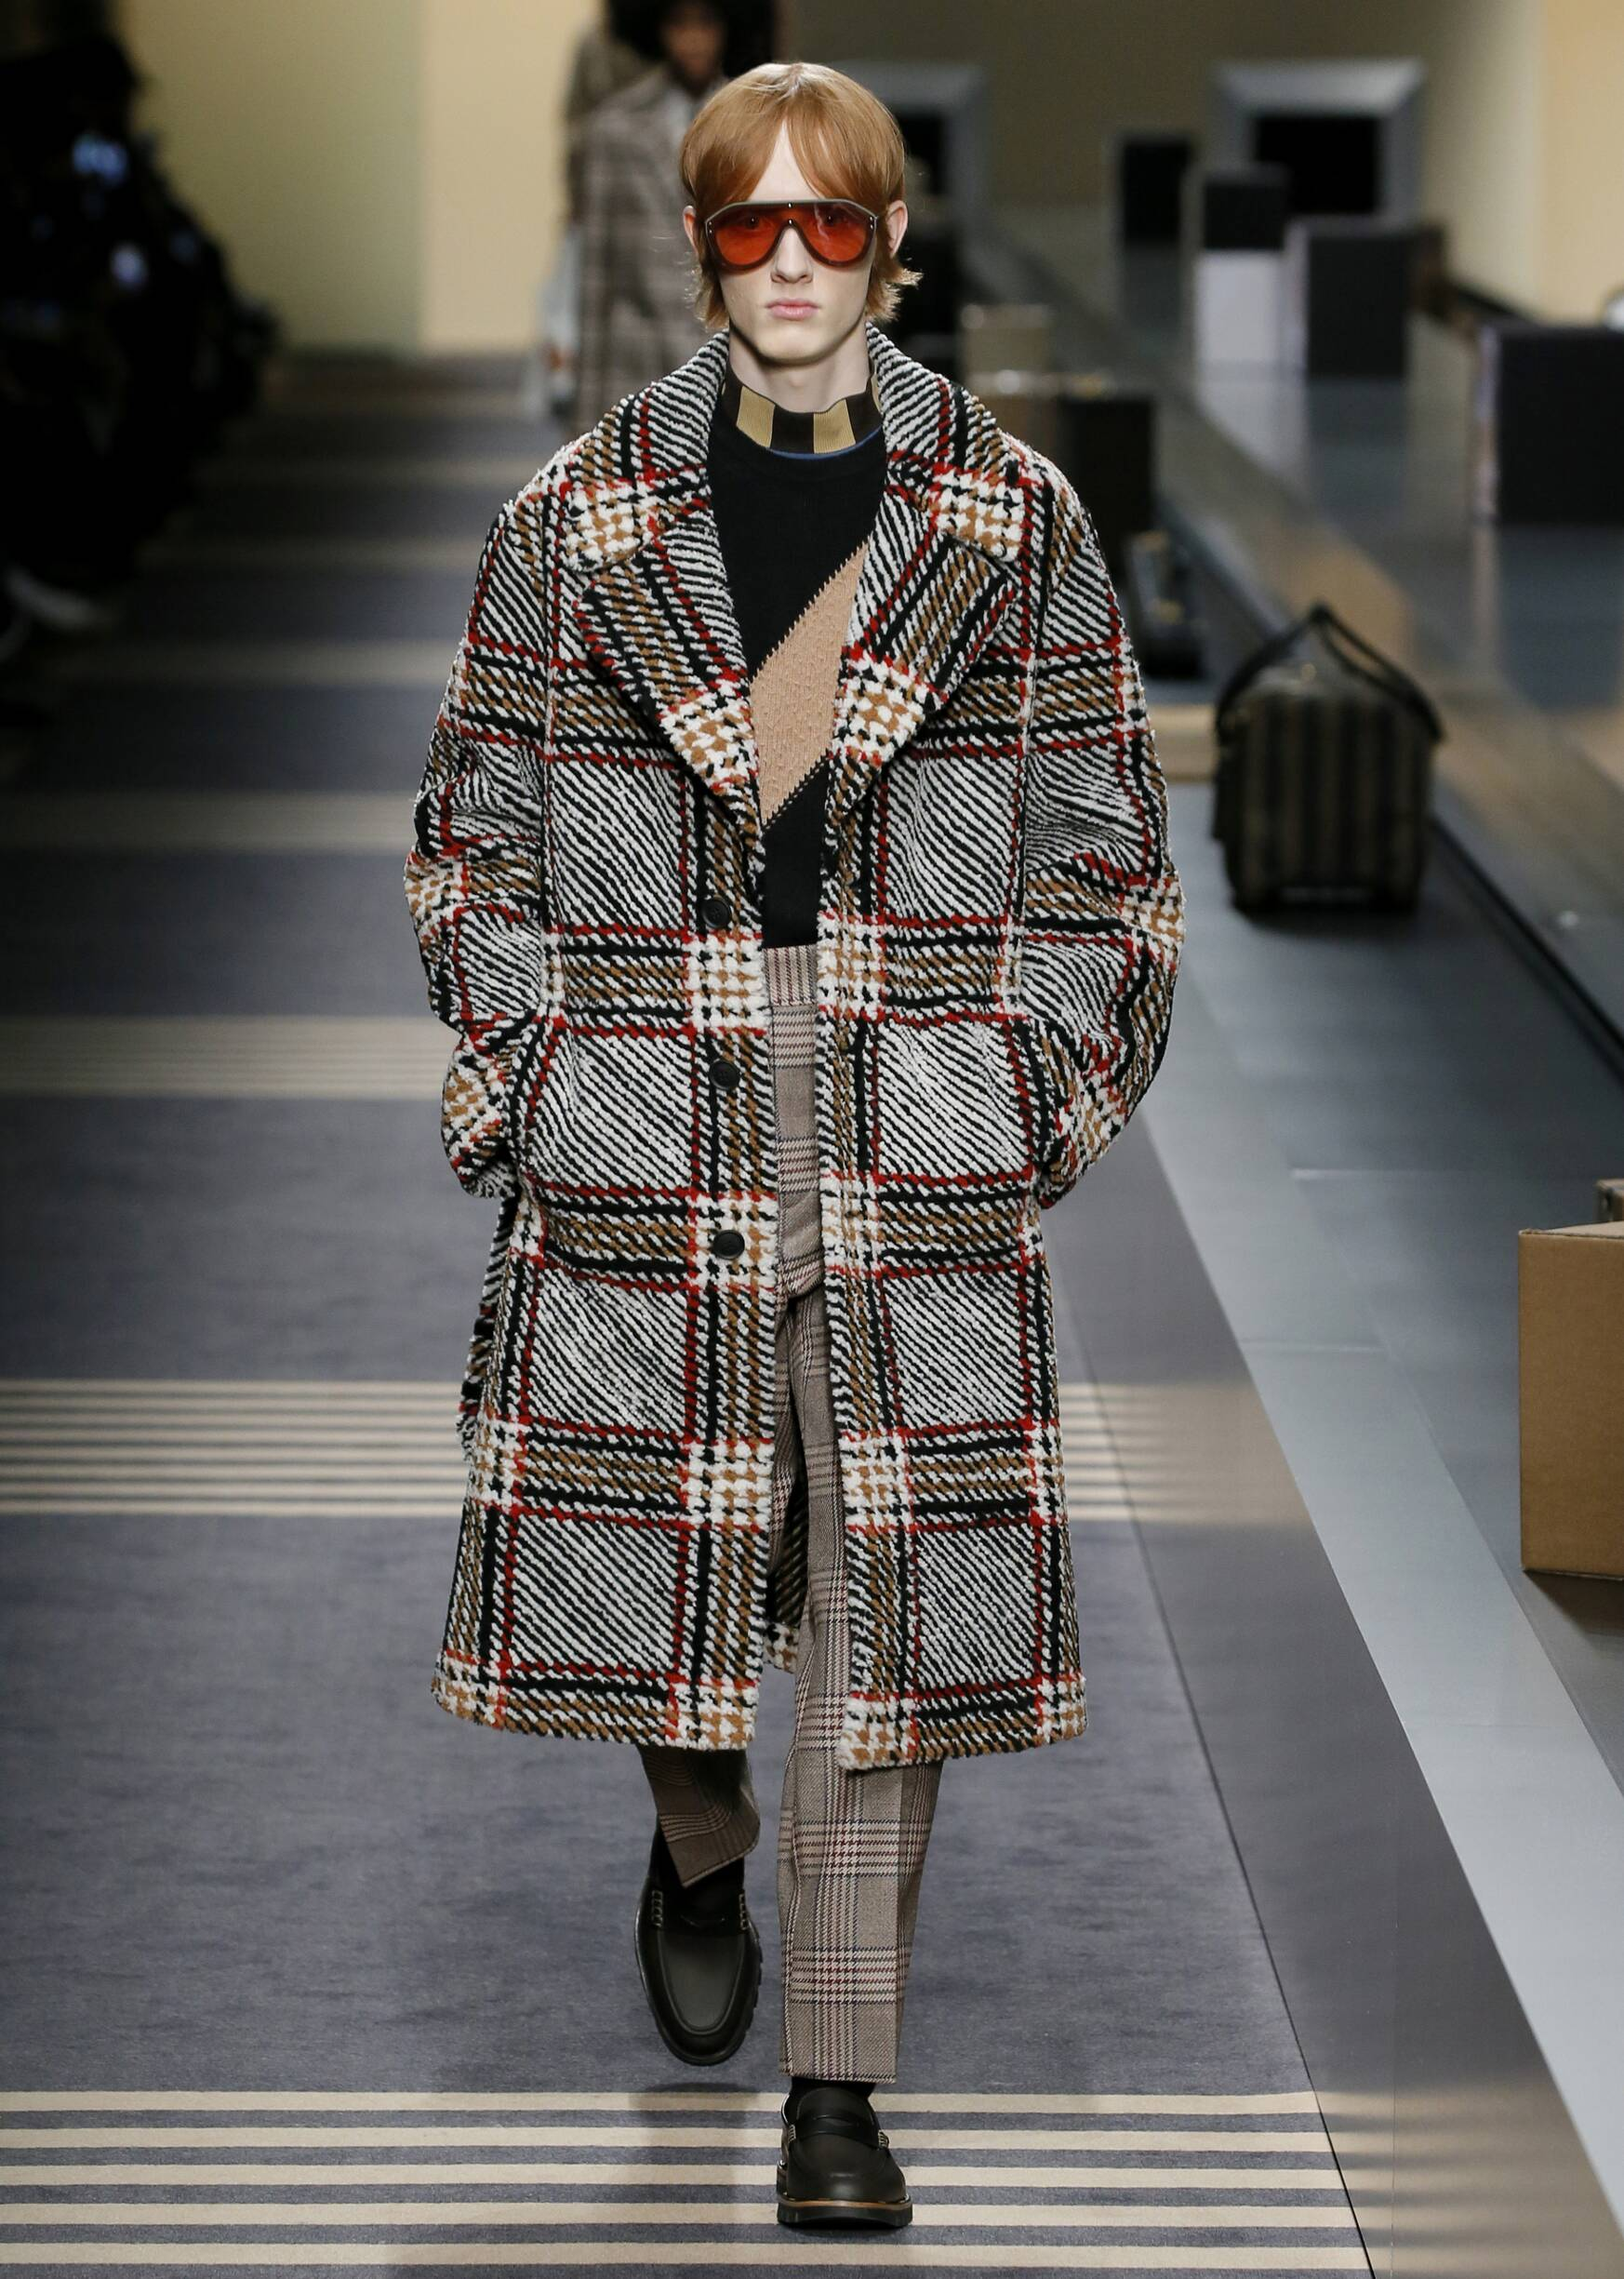 FW 2018-19 Fendi Fashion Show Milan